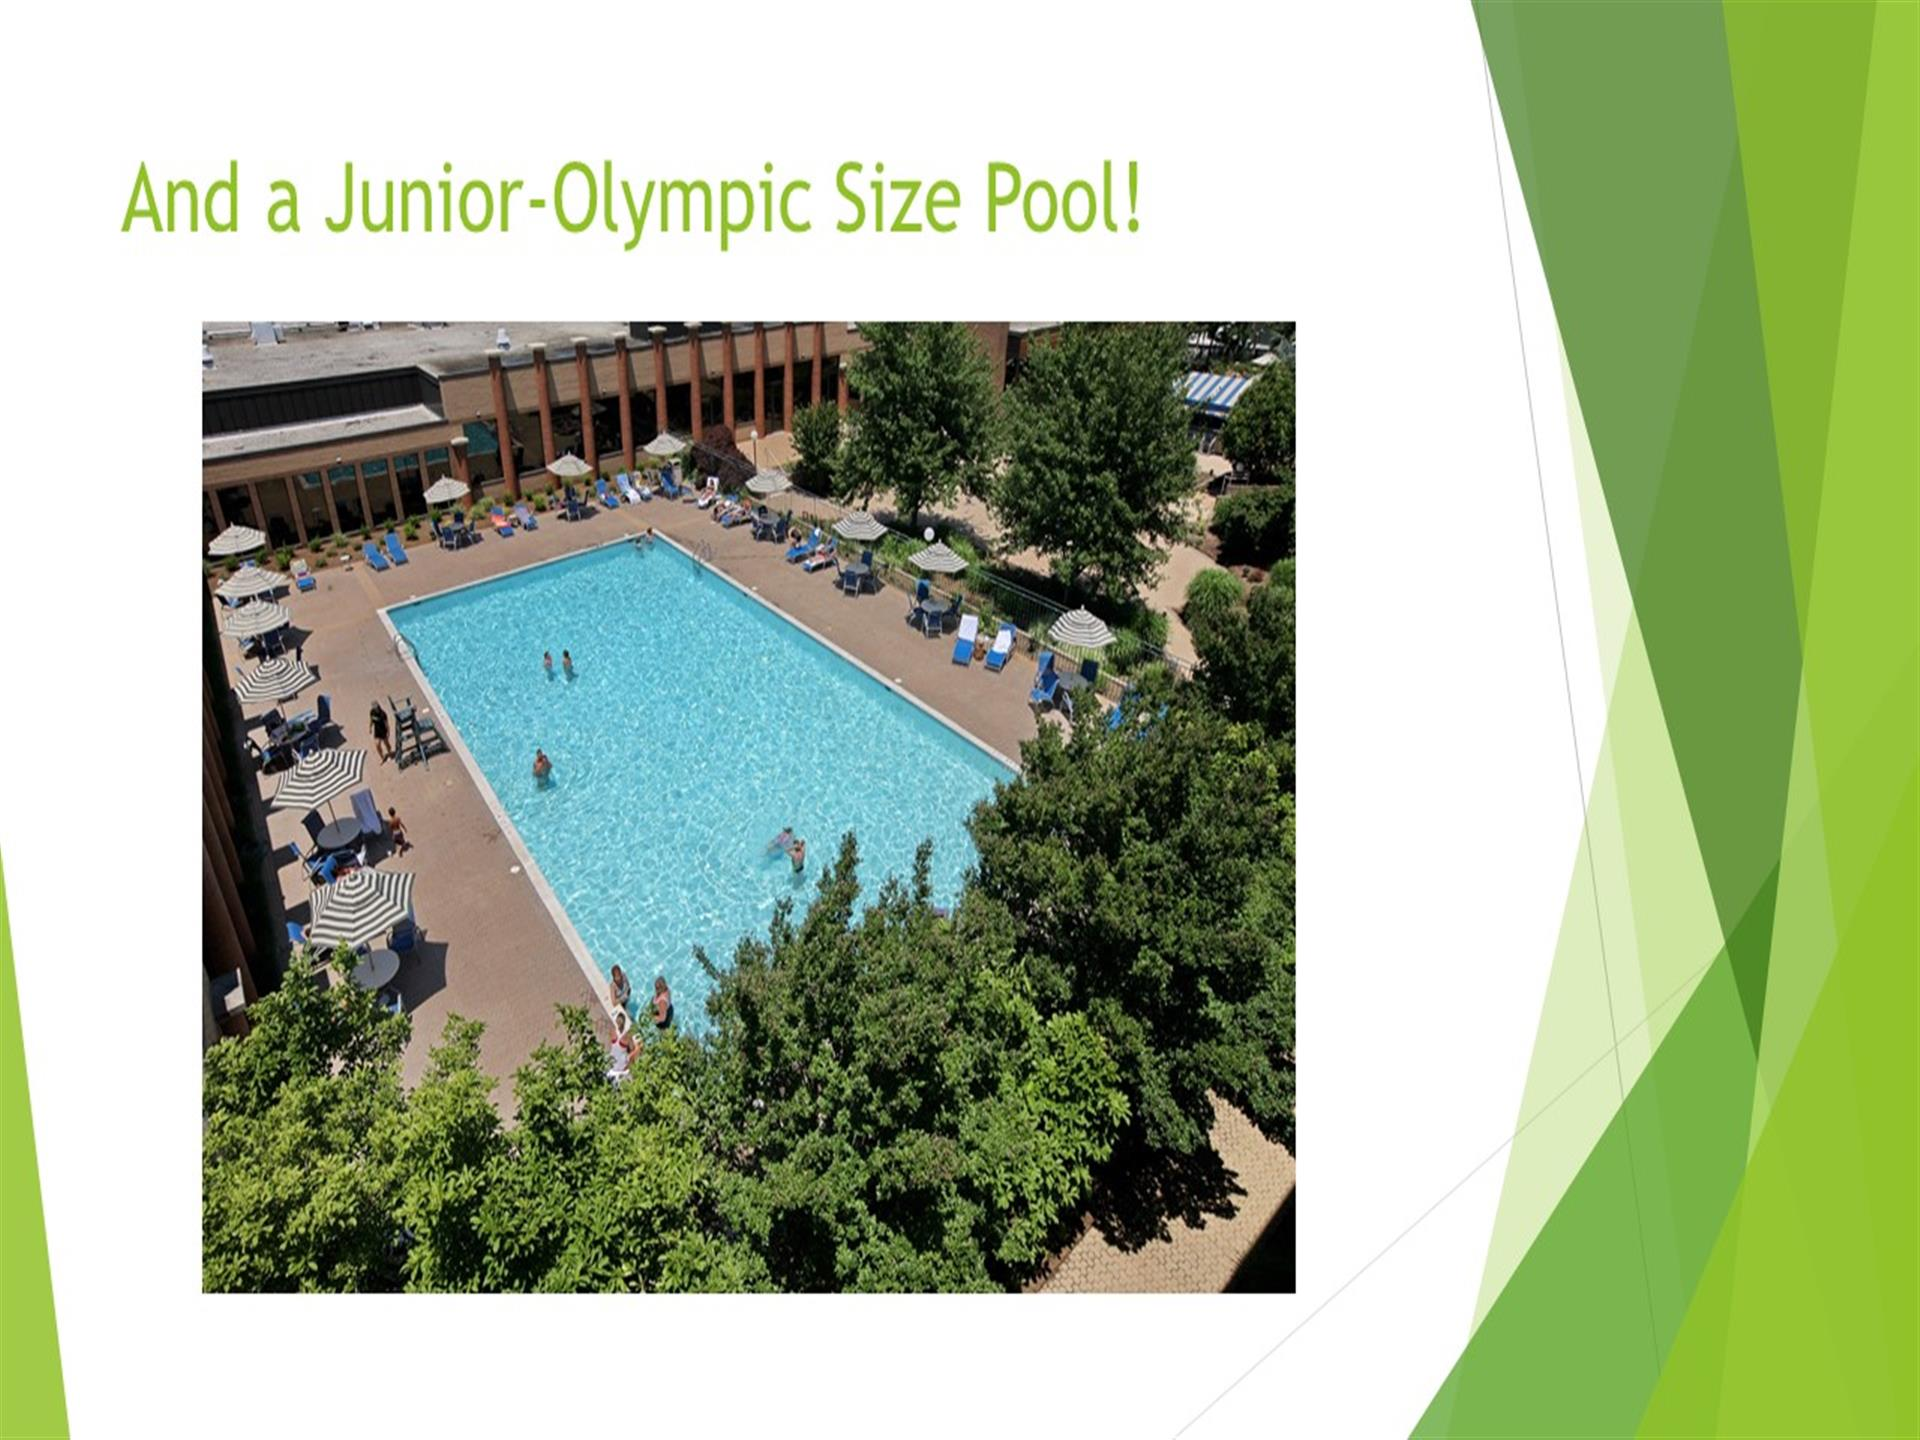 Junior olympic size pool aerial view